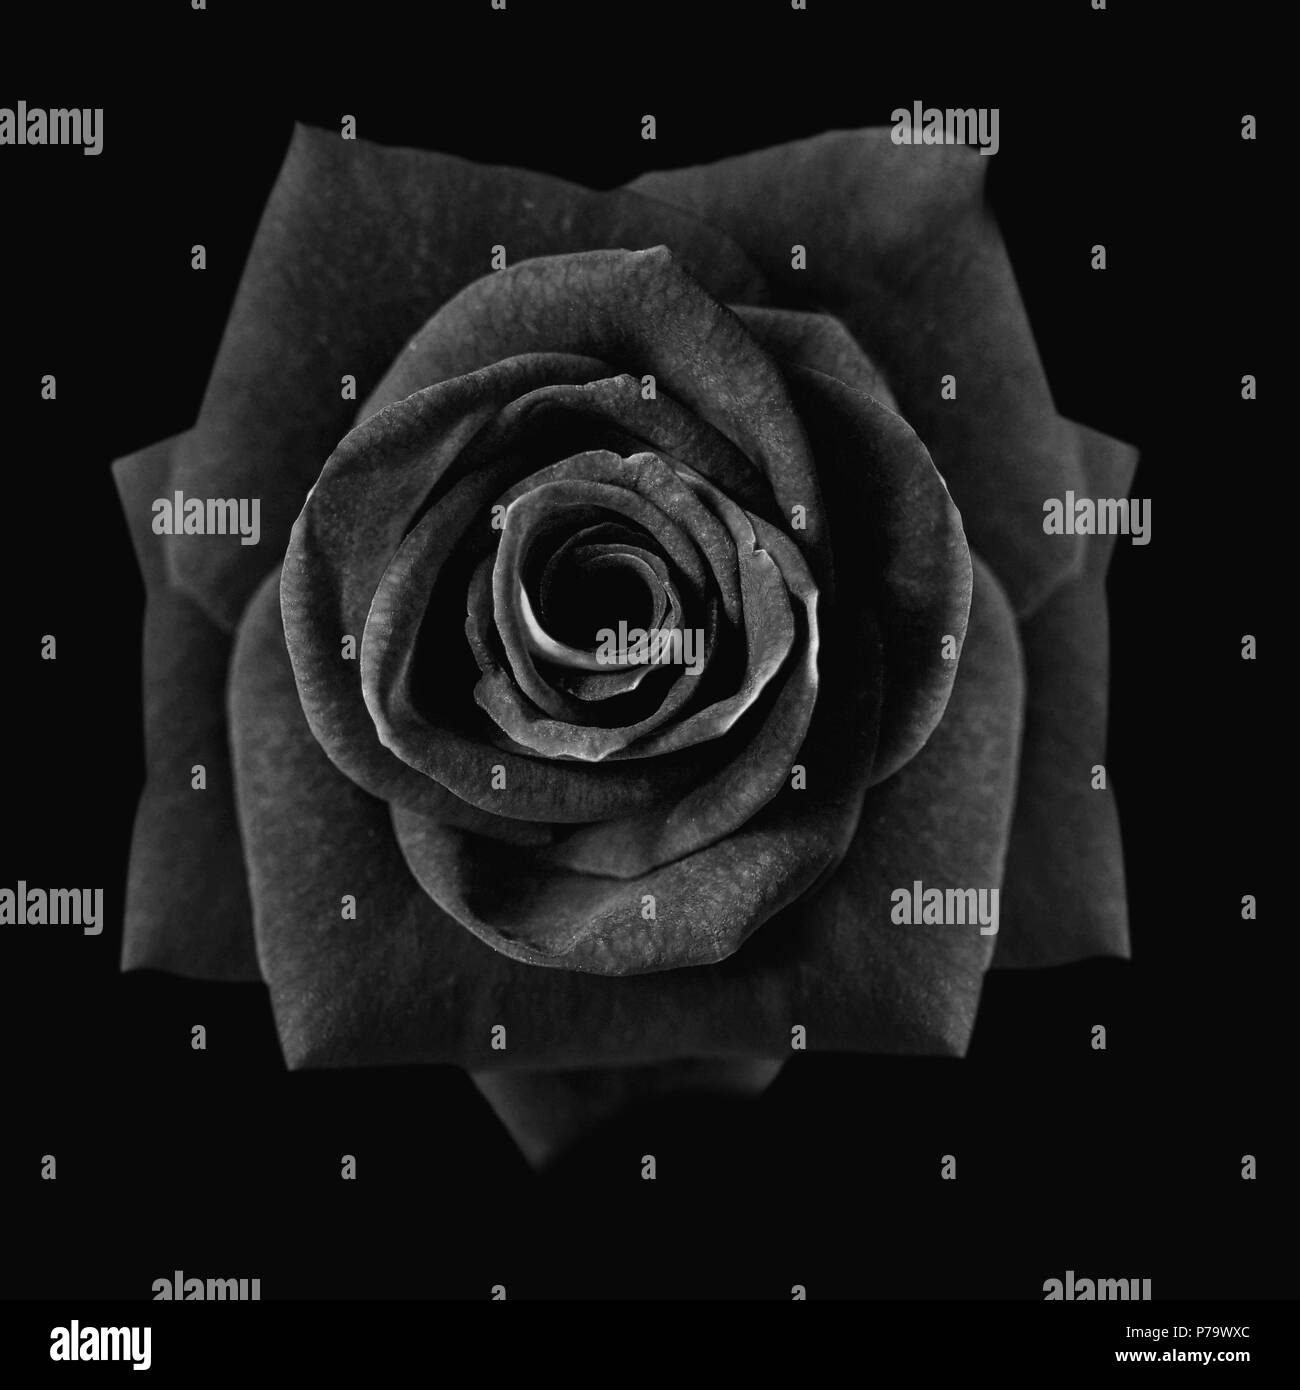 Dark Red Roses Background Red Rose Isolated On Black Background Greeting Card With A Luxury Roses Image Dark Tone Stock Photo Alamy